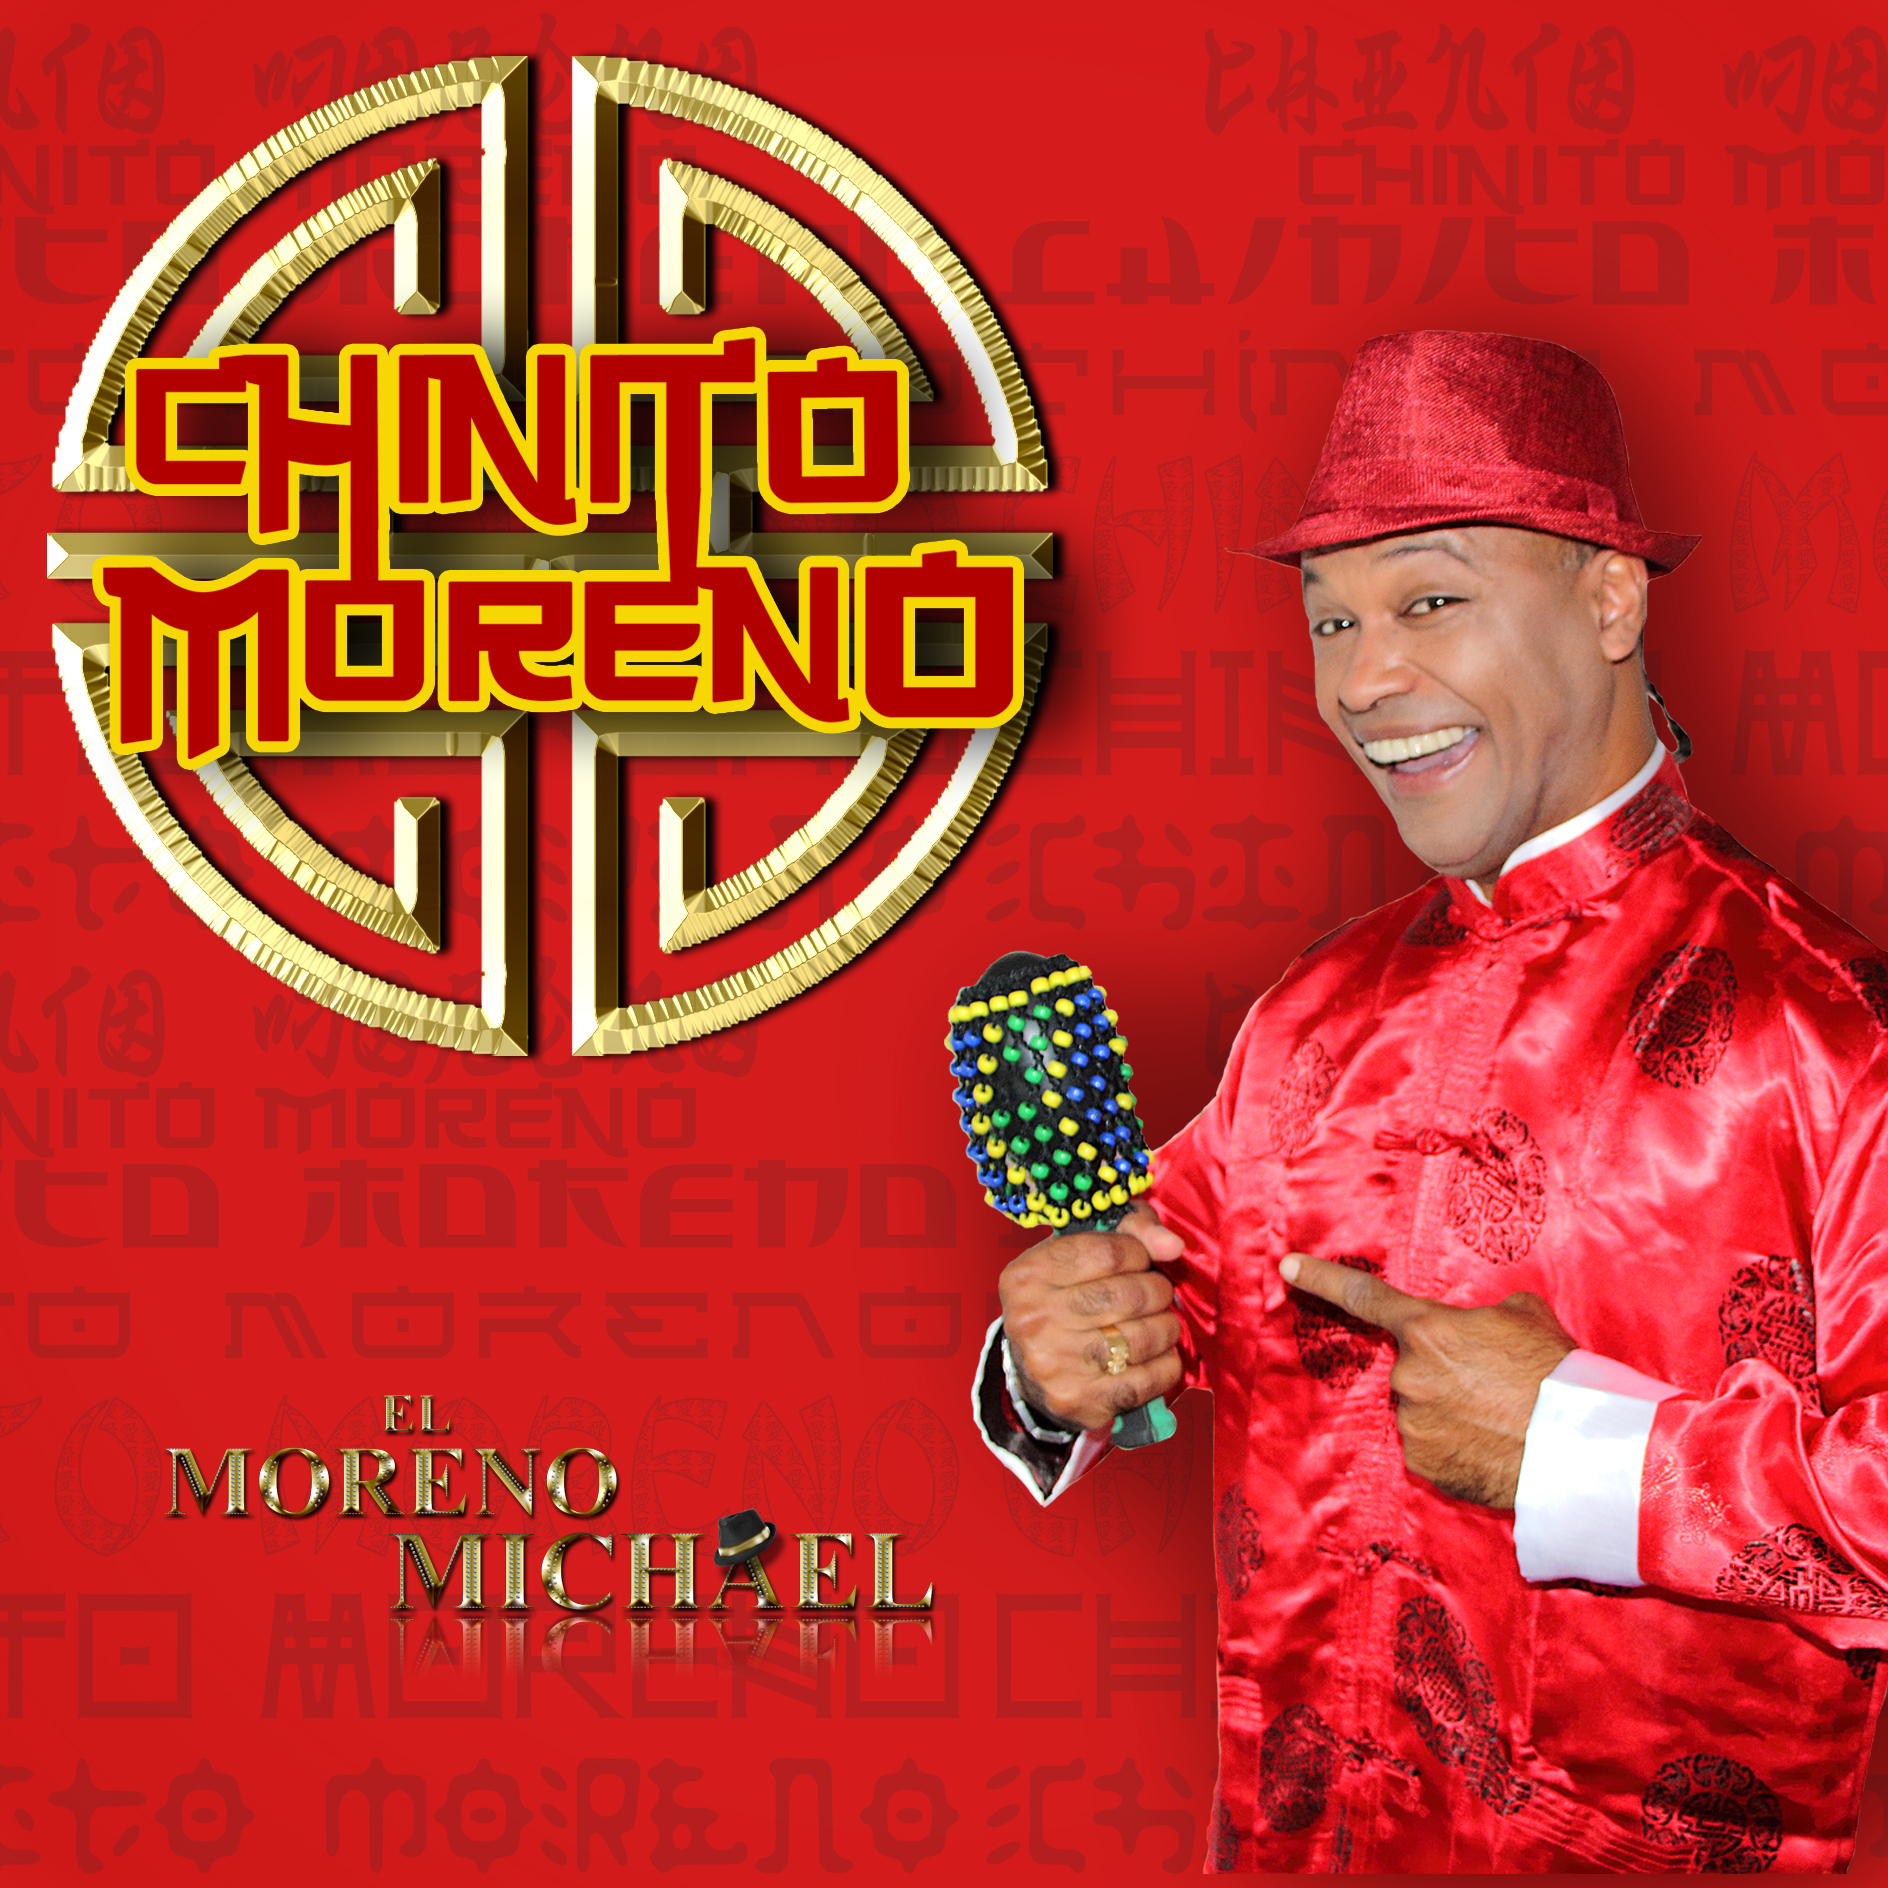 Chinito Moreno CD DVD.jpg